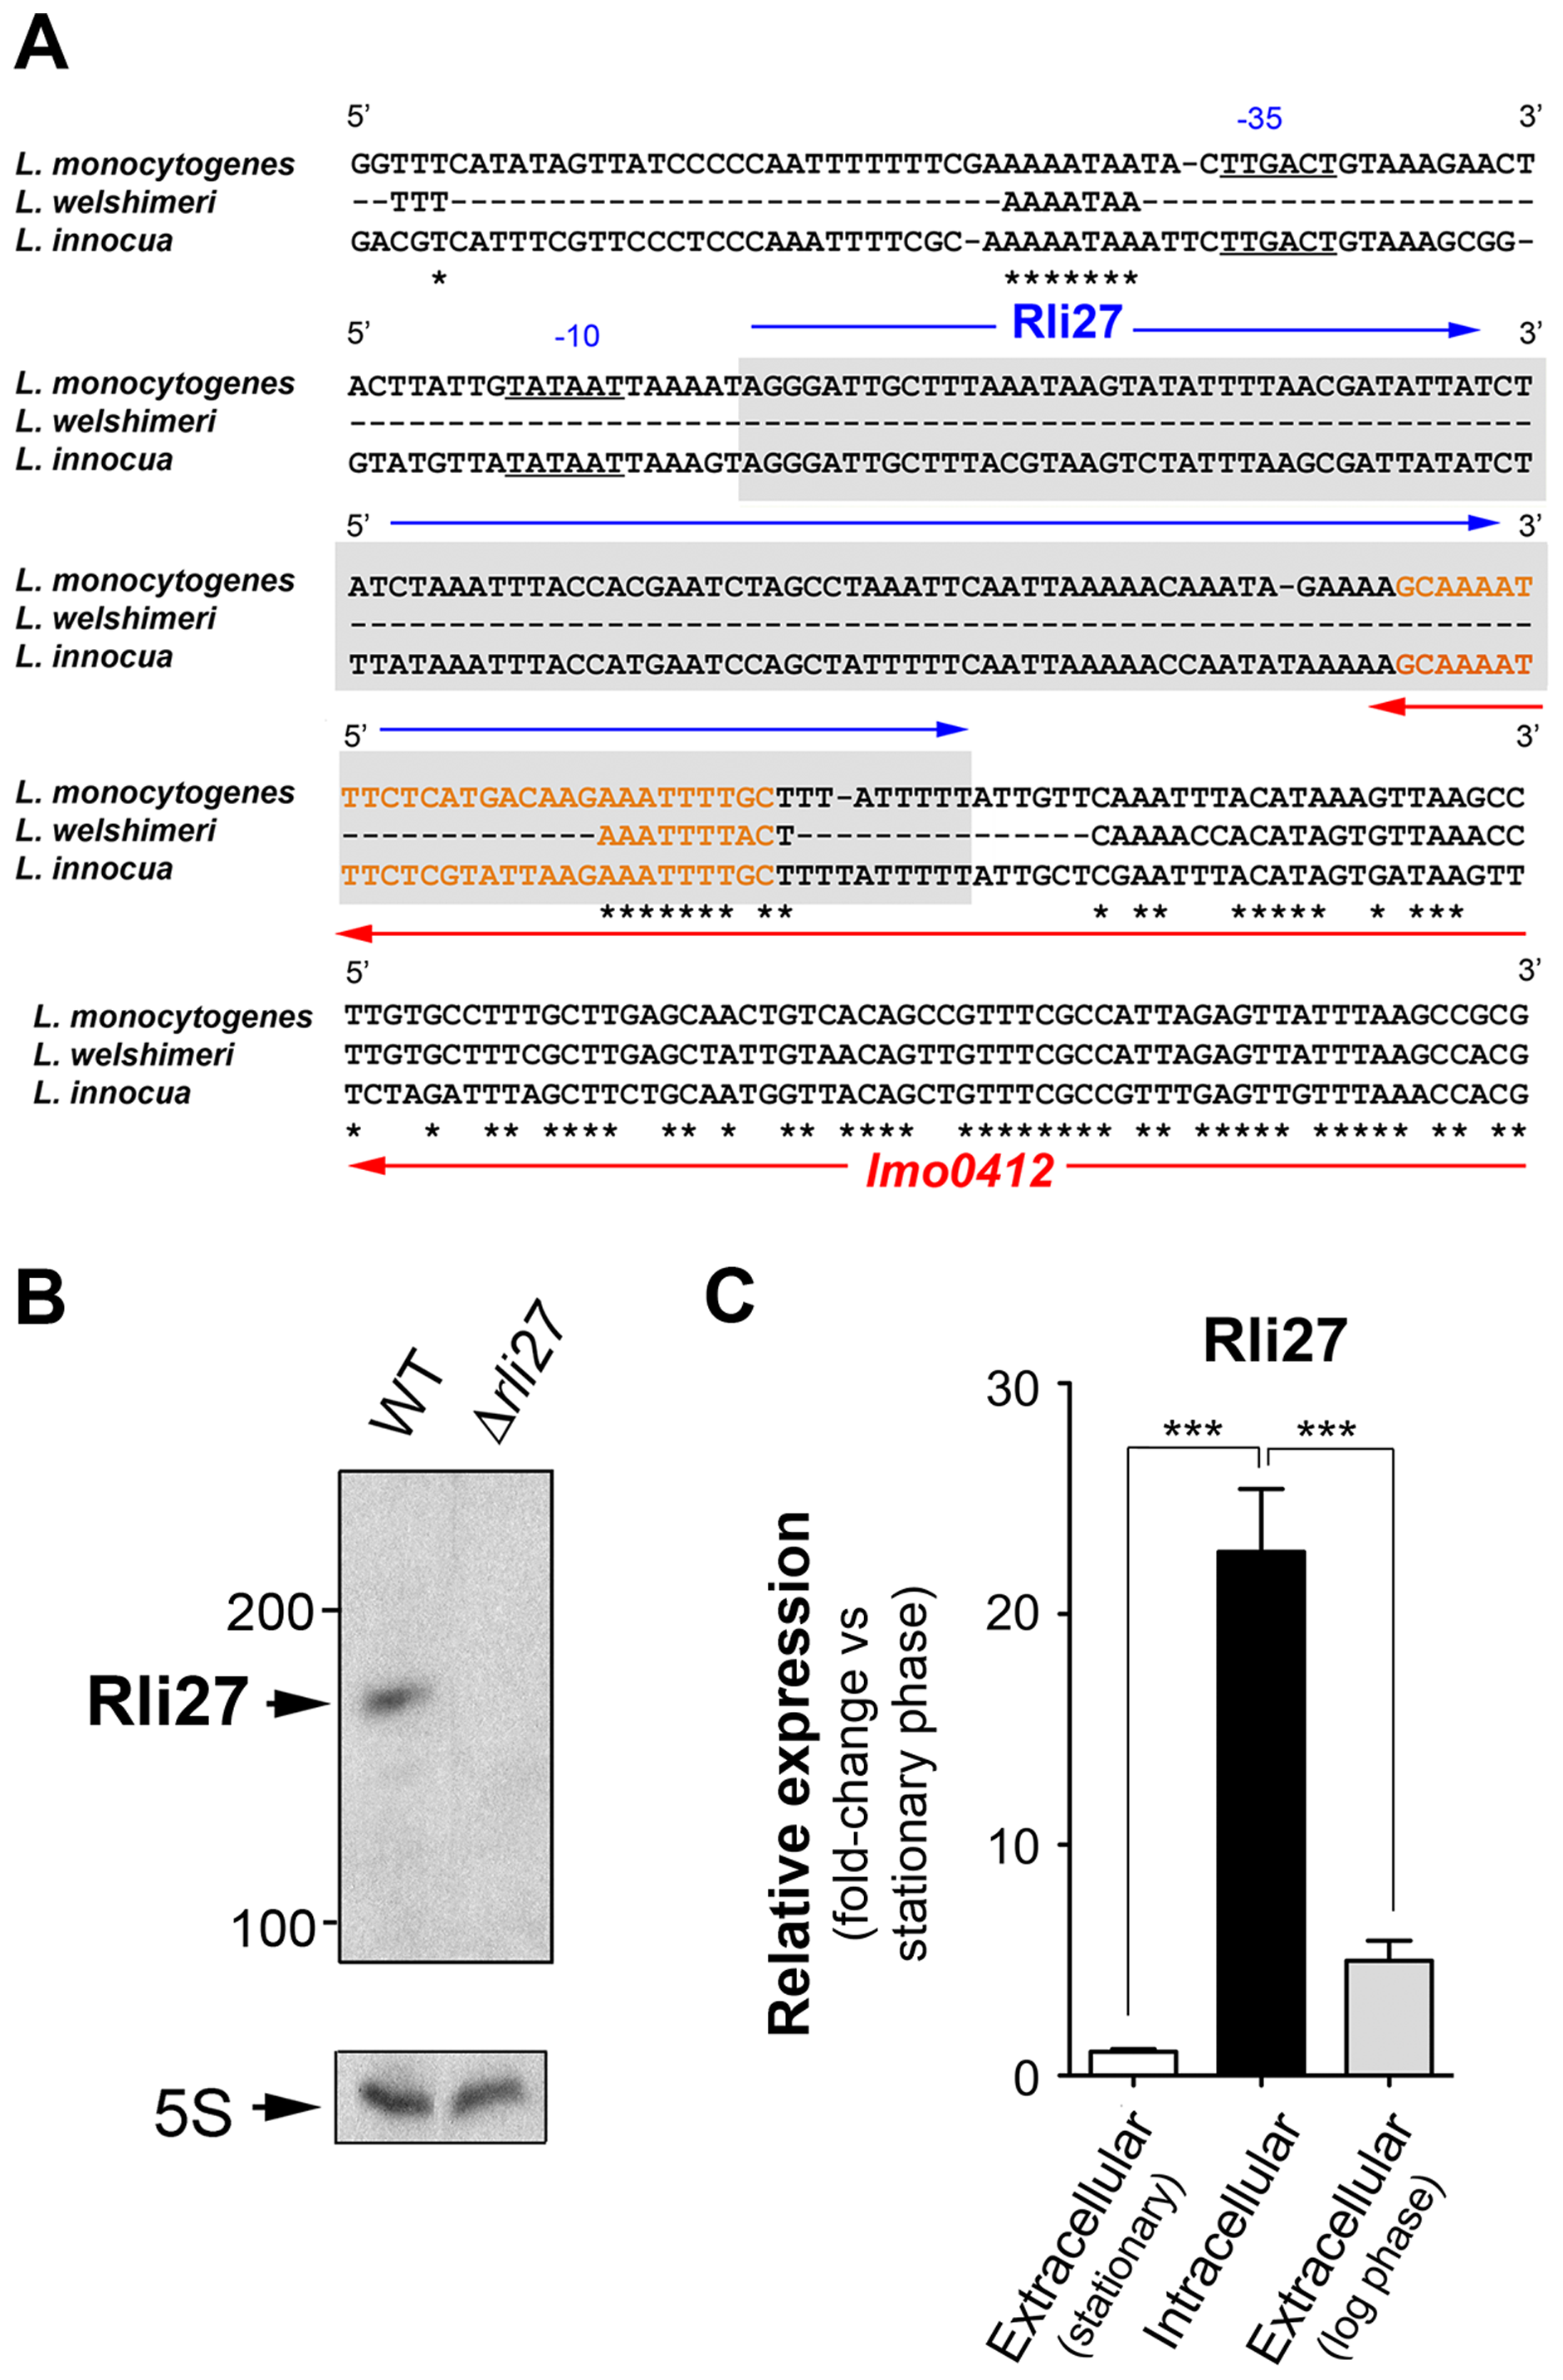 Rli27 is a bona fide <i>L. monocytogenes</i> sRNA induced by intracellular bacteria.